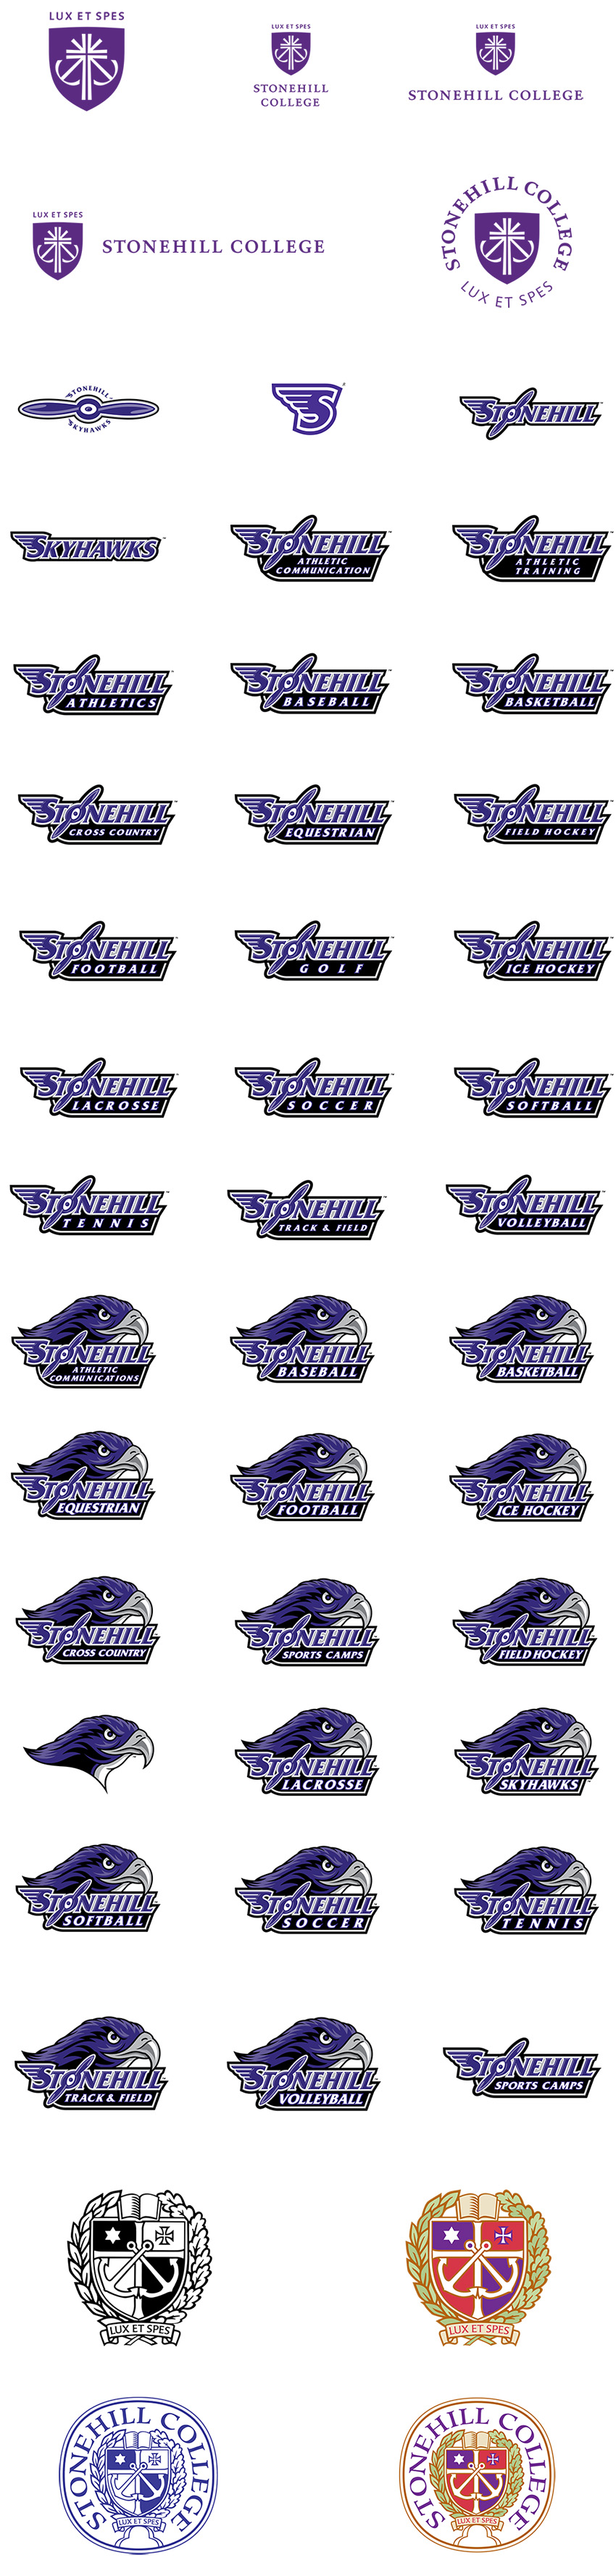 Trademarked Logos of Stonehill College